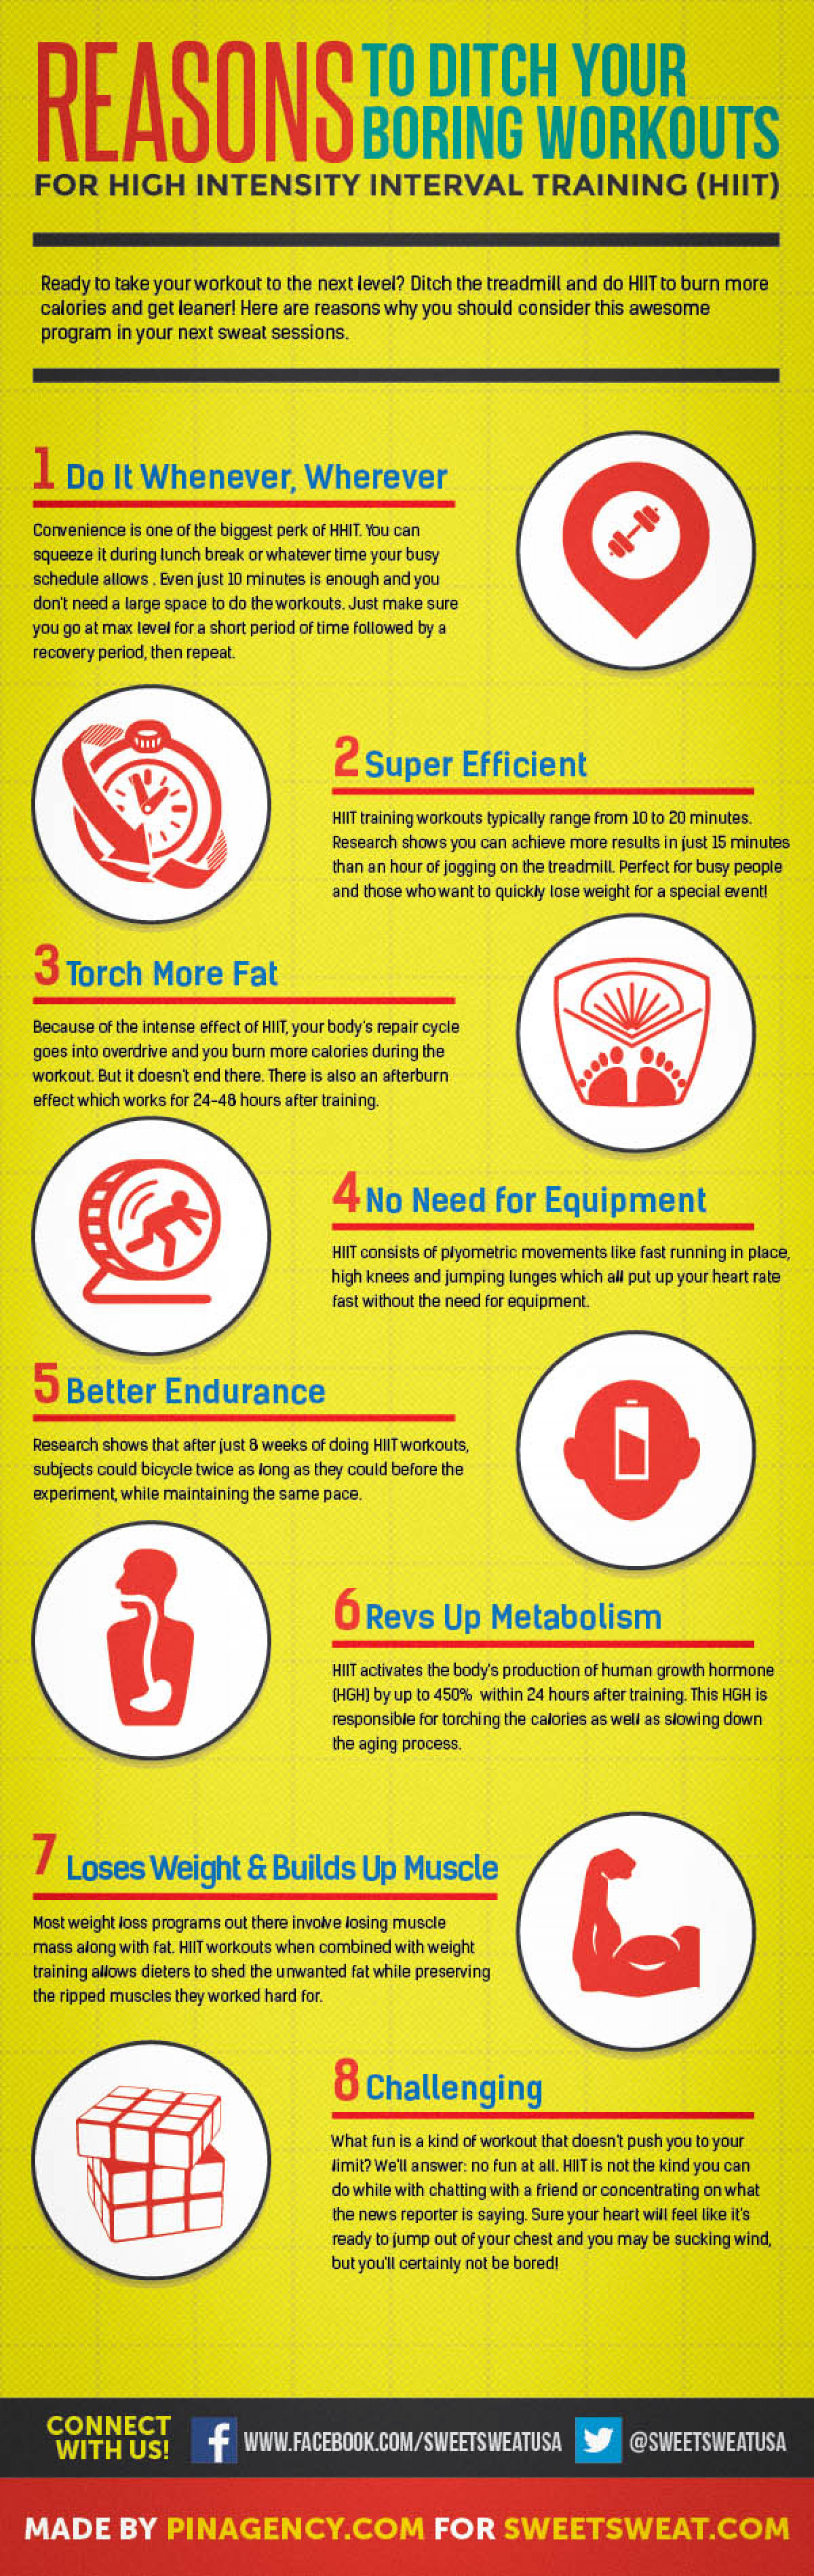 Reasons to Ditch Your Boring Workouts Infographic